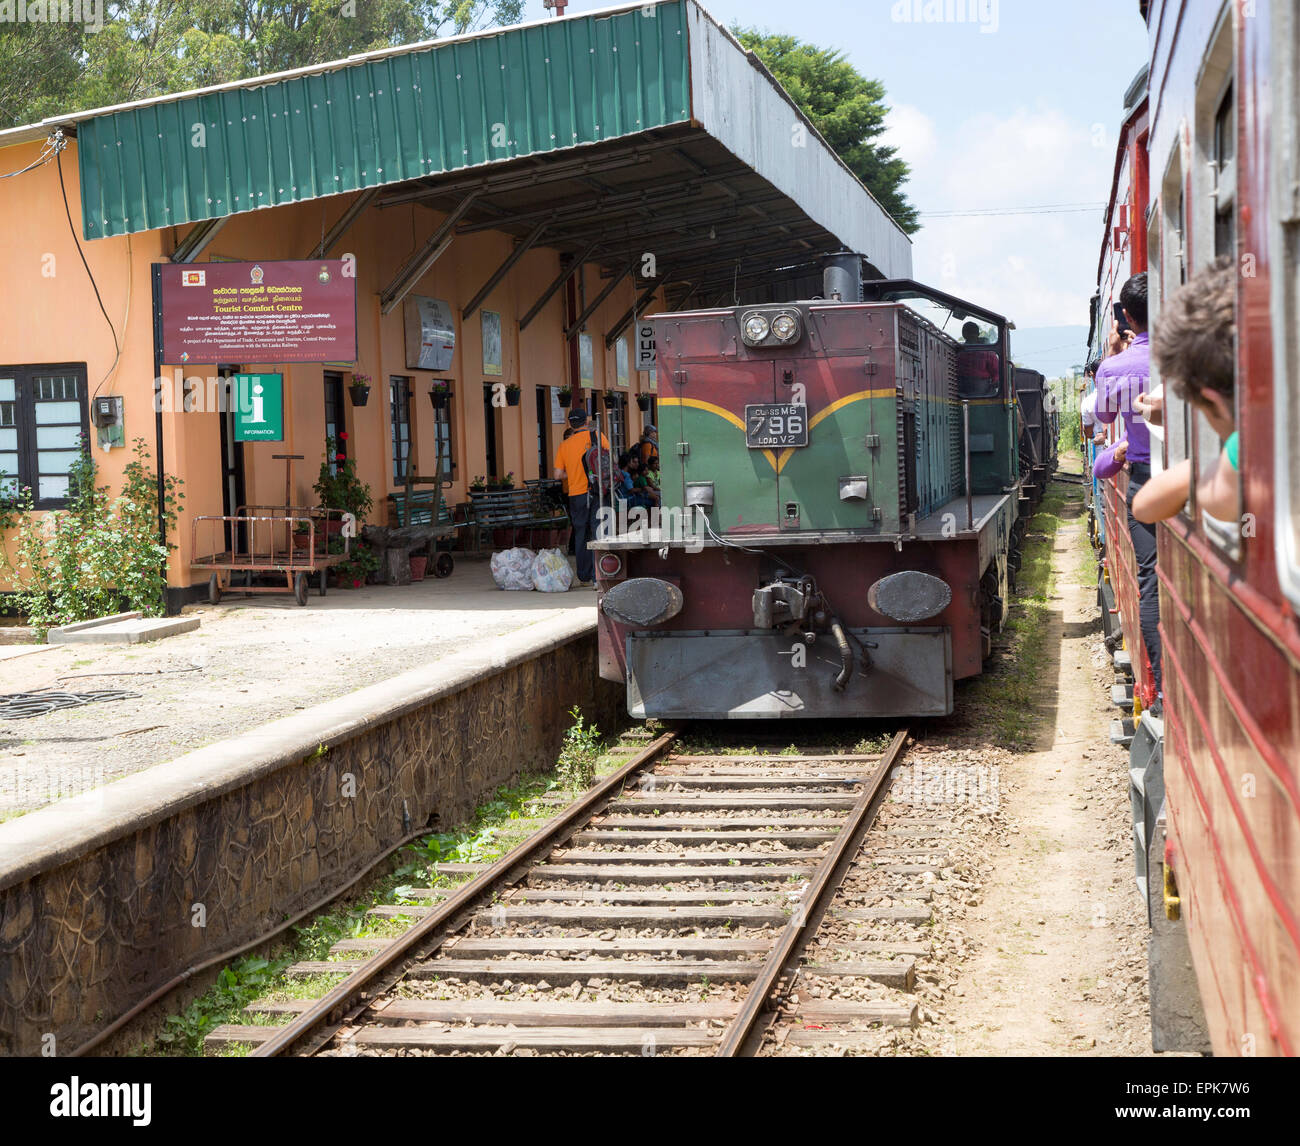 Trains and platform, Pittipola, Sri Lanka, Asia the highest railways station in the country - Stock Image